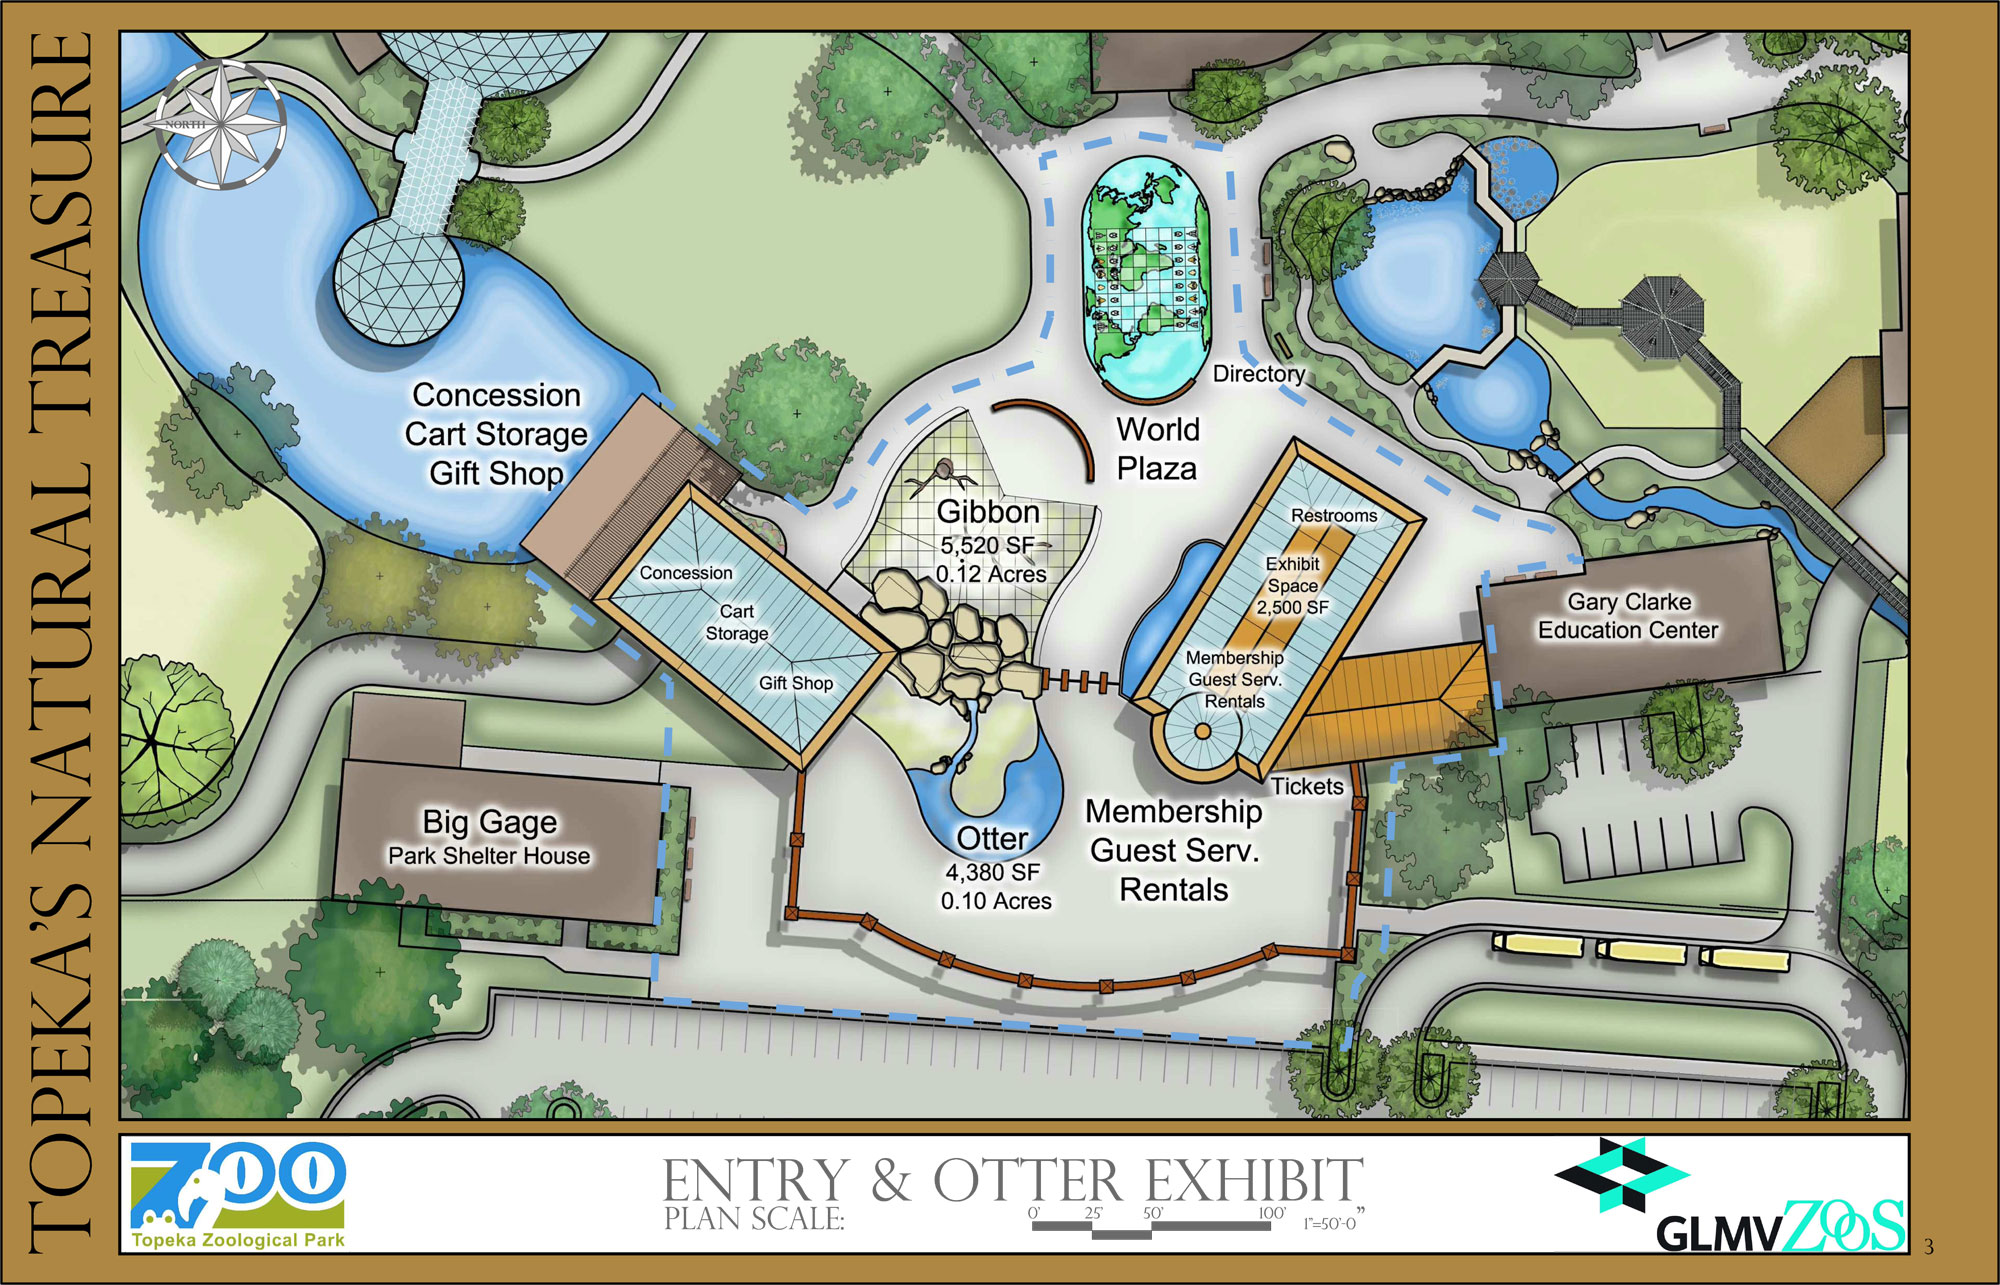 Entry & Otter Exhibit